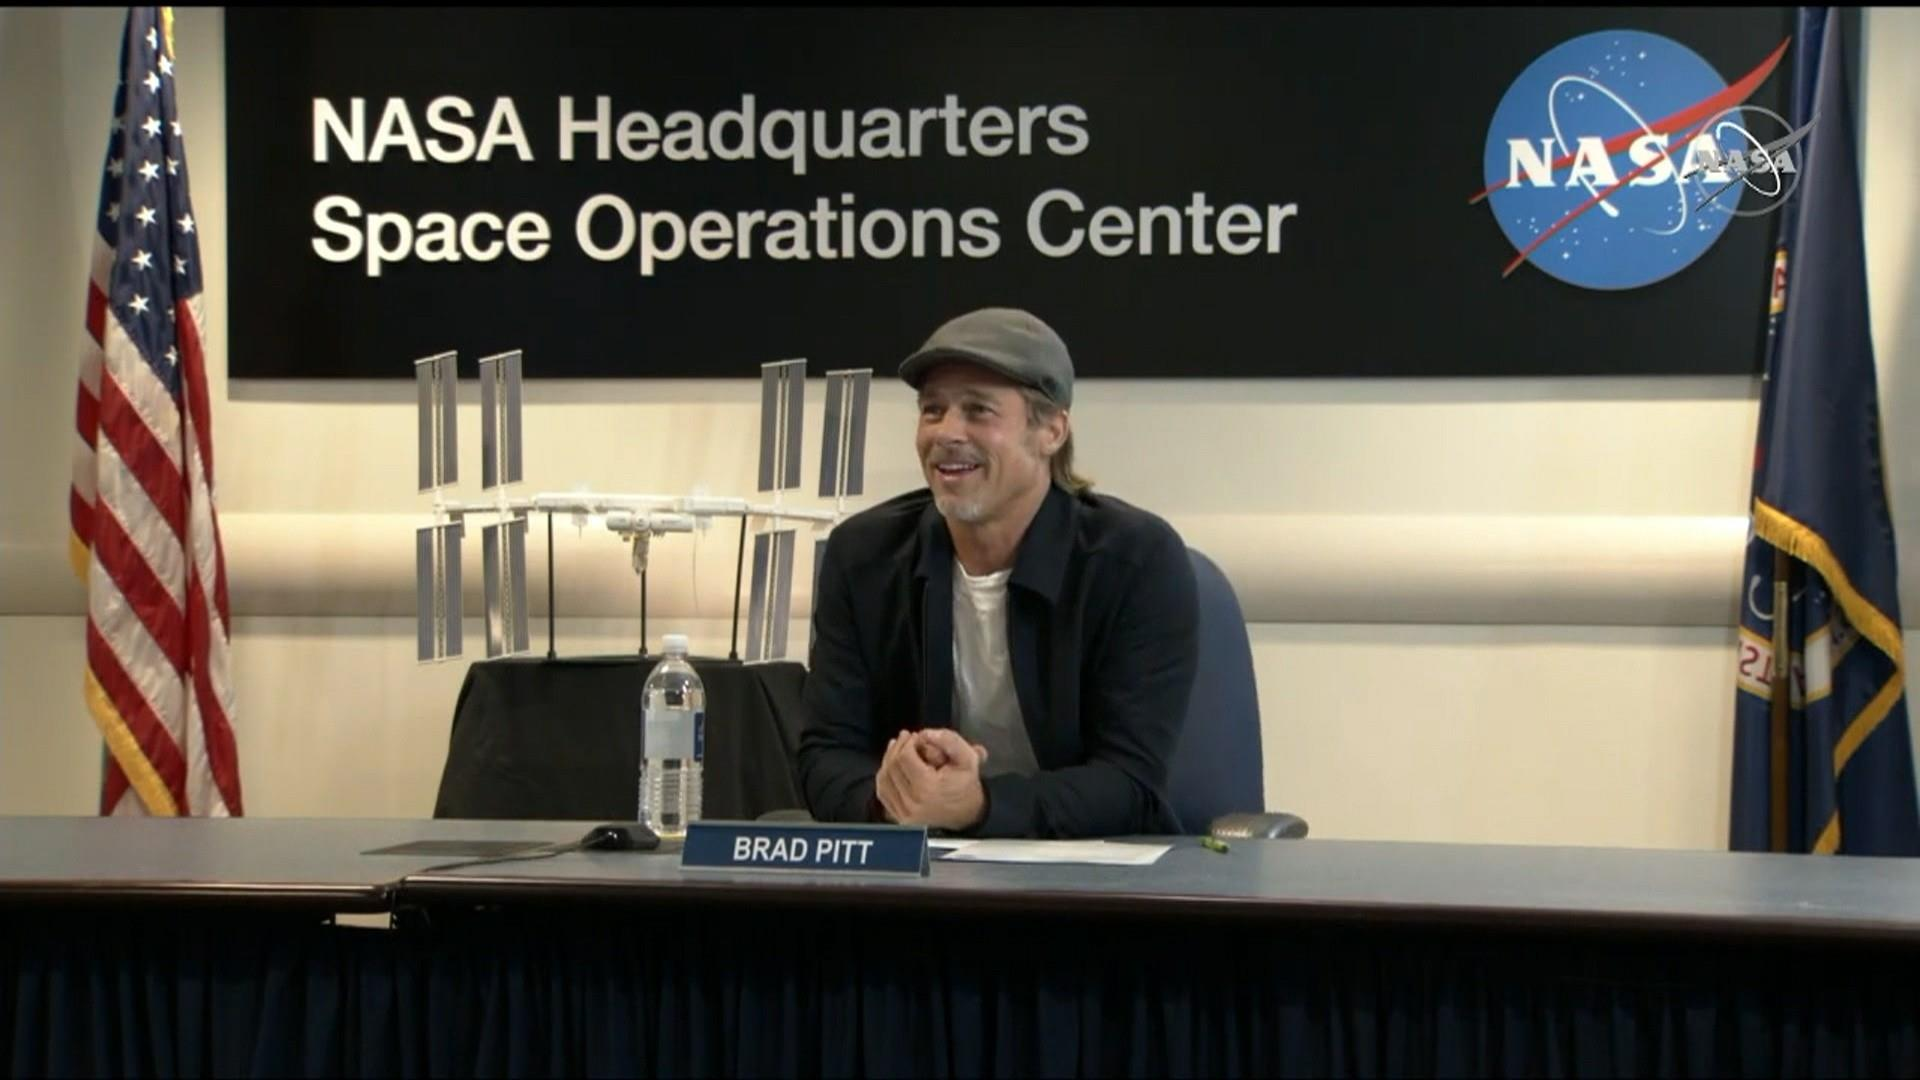 Brad Pitt interviews NASA astronaut in space ahead of new movie